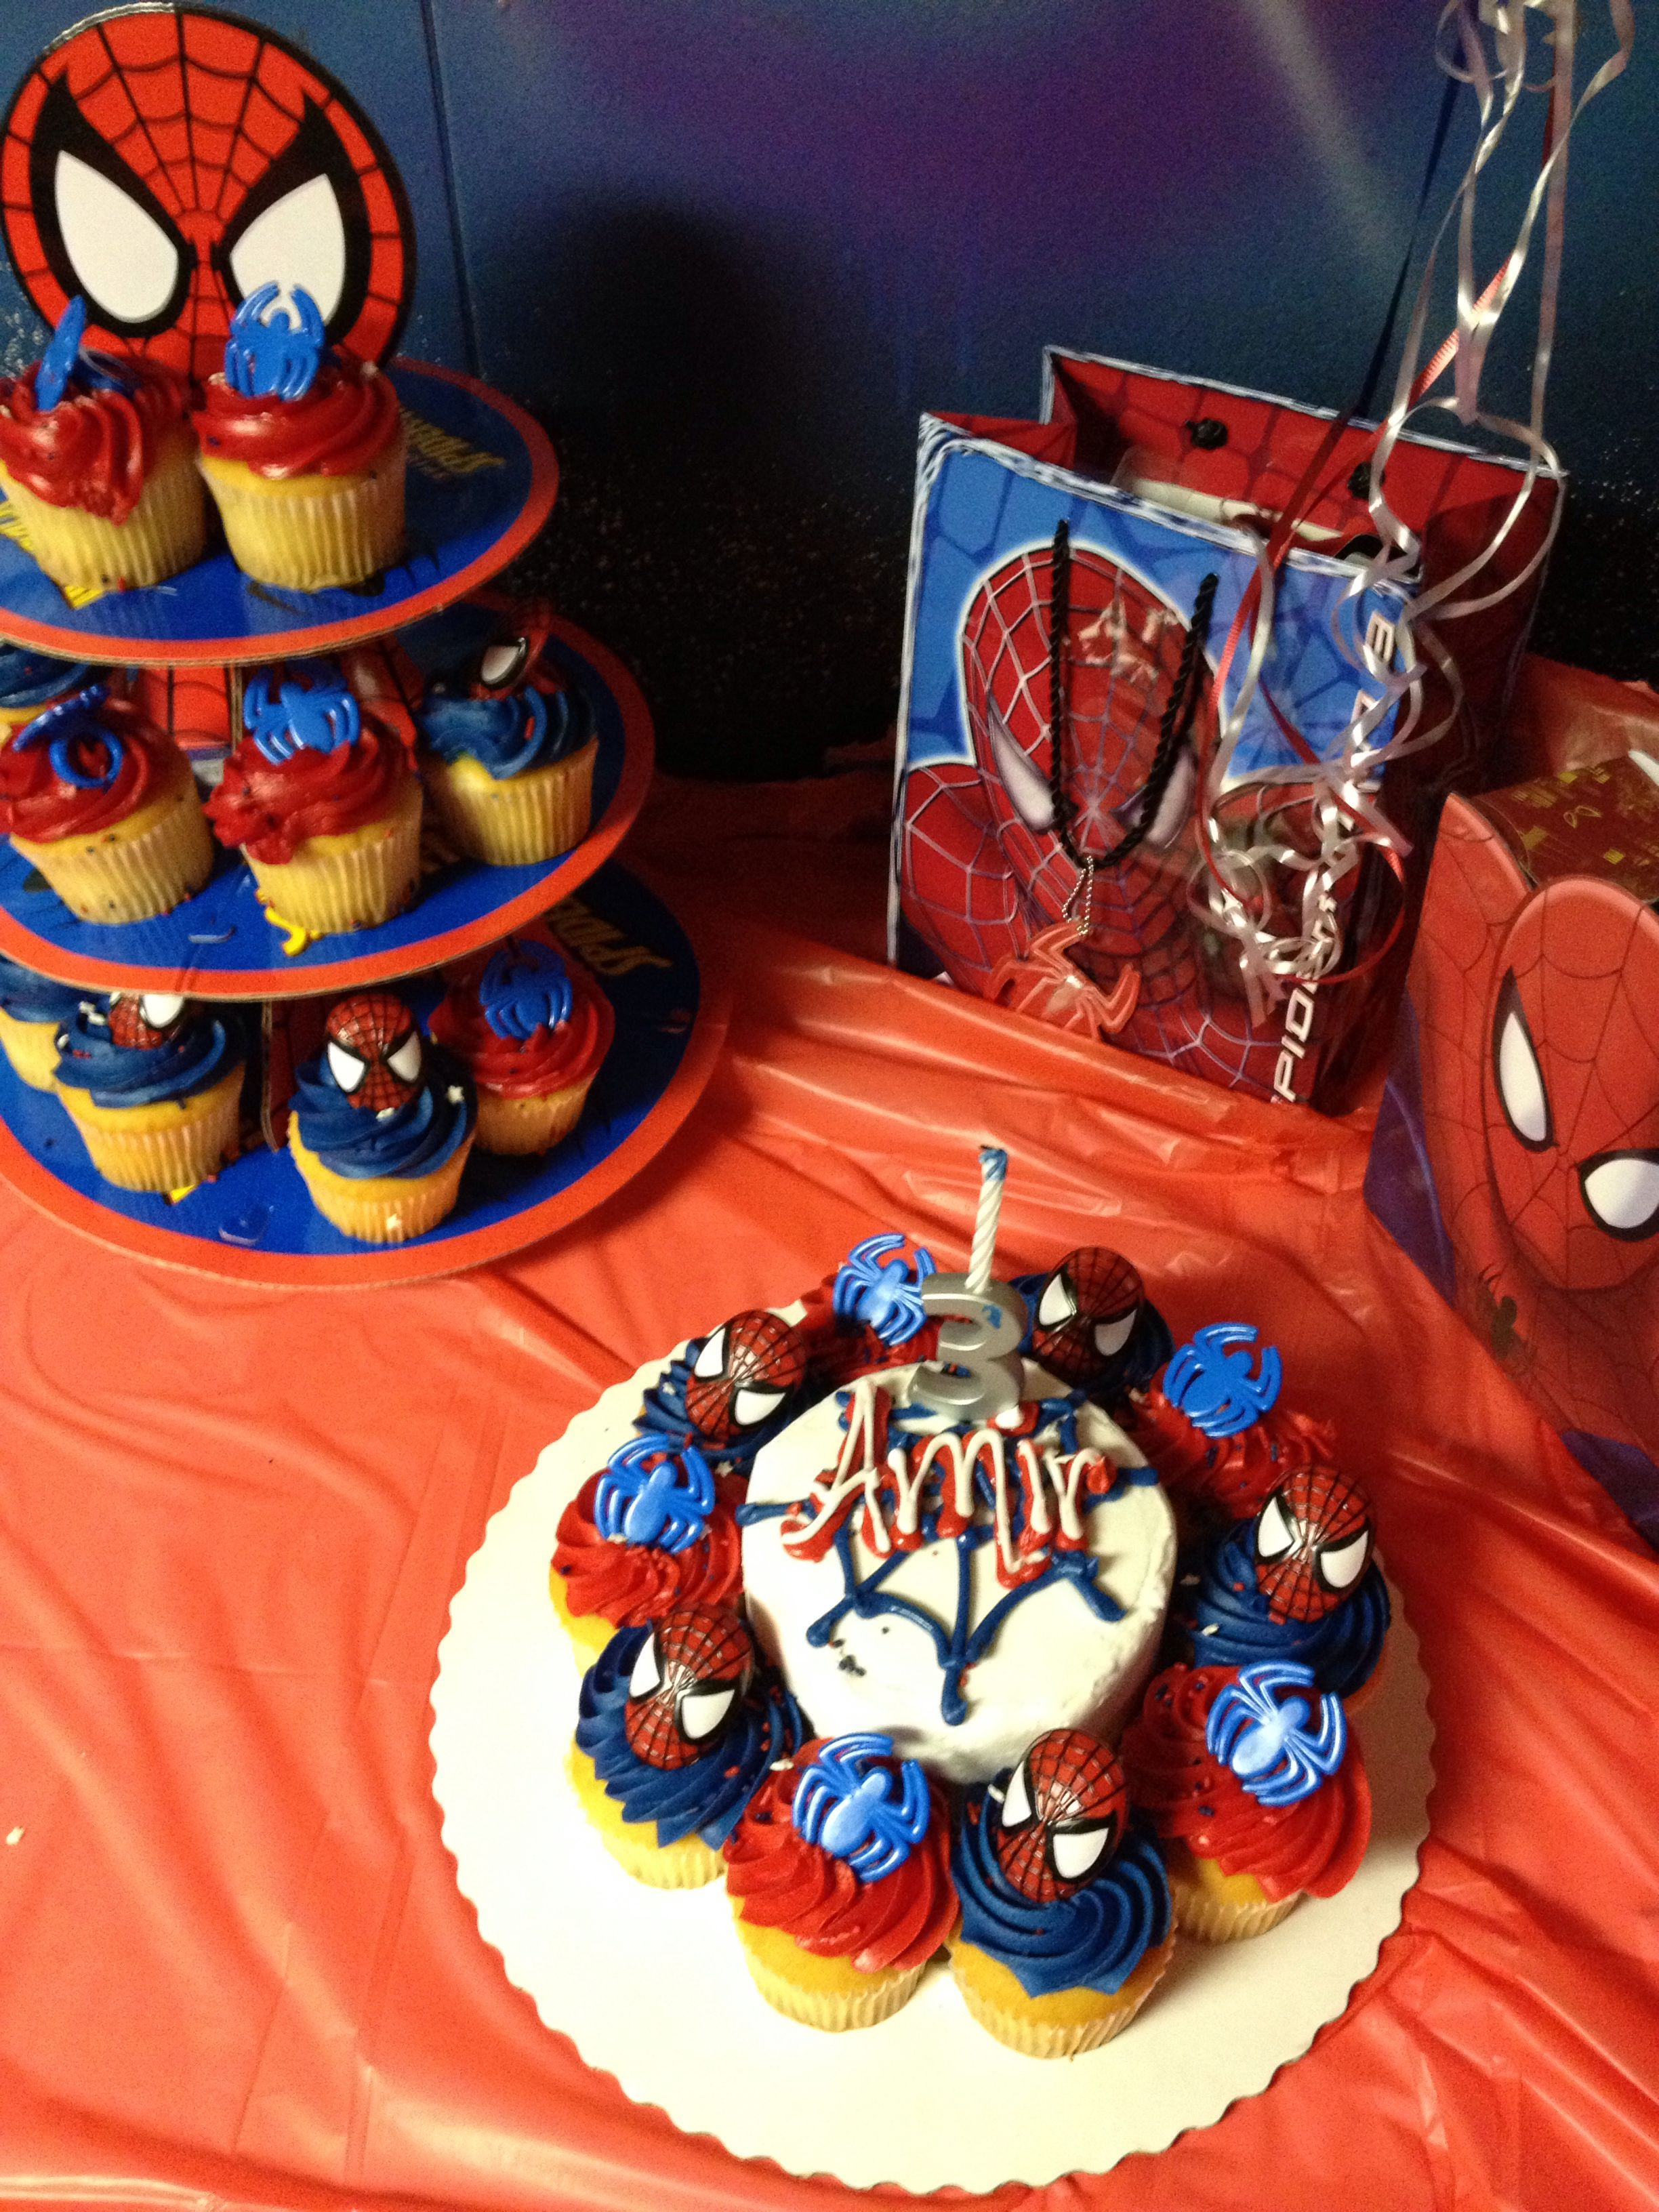 Prime Spiderman Cake And Cupcake From Sams Club Only 26 Total 30 Funny Birthday Cards Online Alyptdamsfinfo